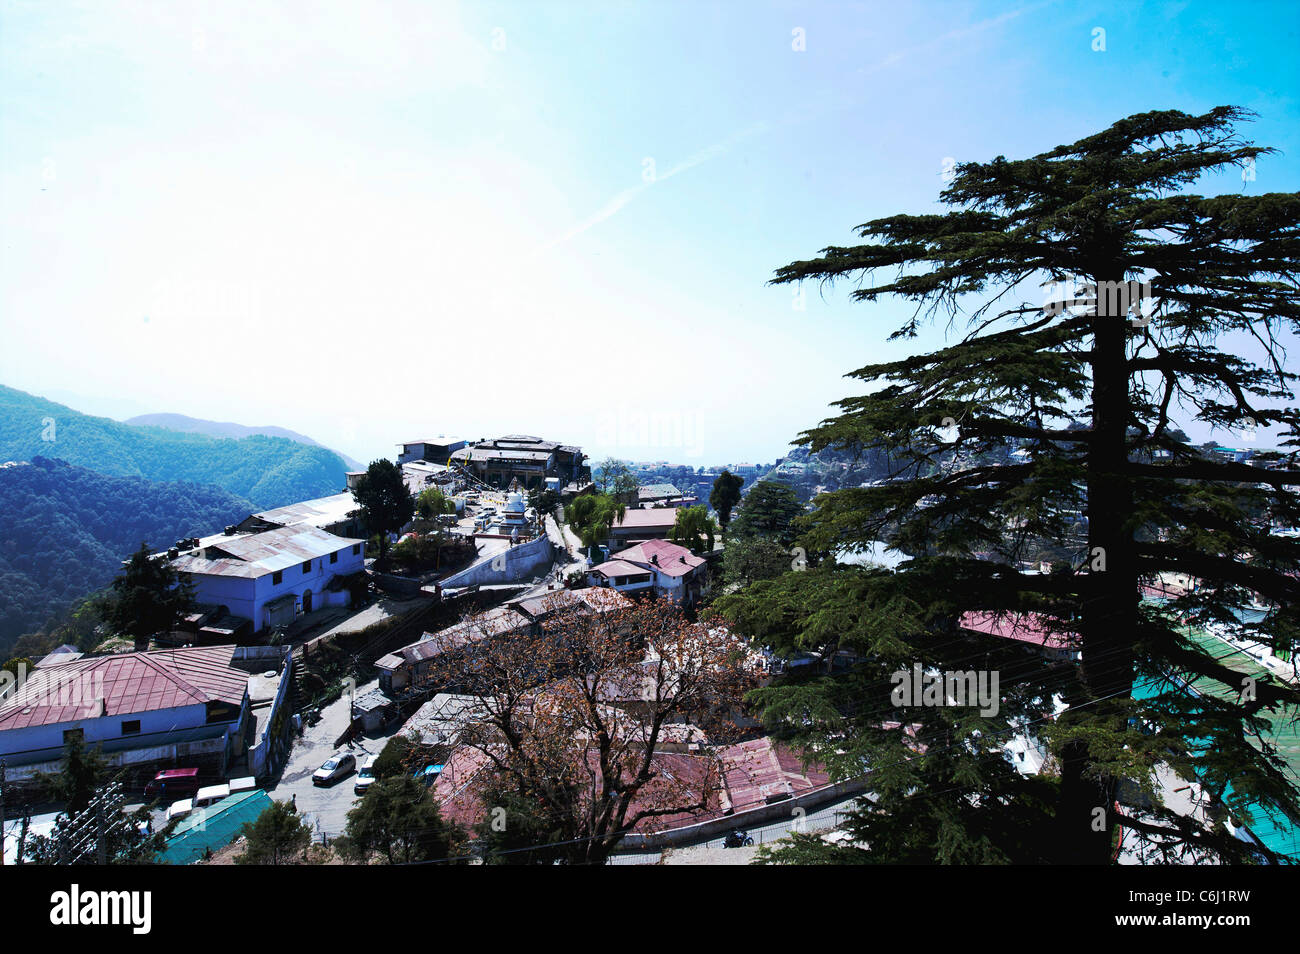 Environmental landscape of Mussuri Town -with tin roof structures-Uttarakhand-India. - Stock Image